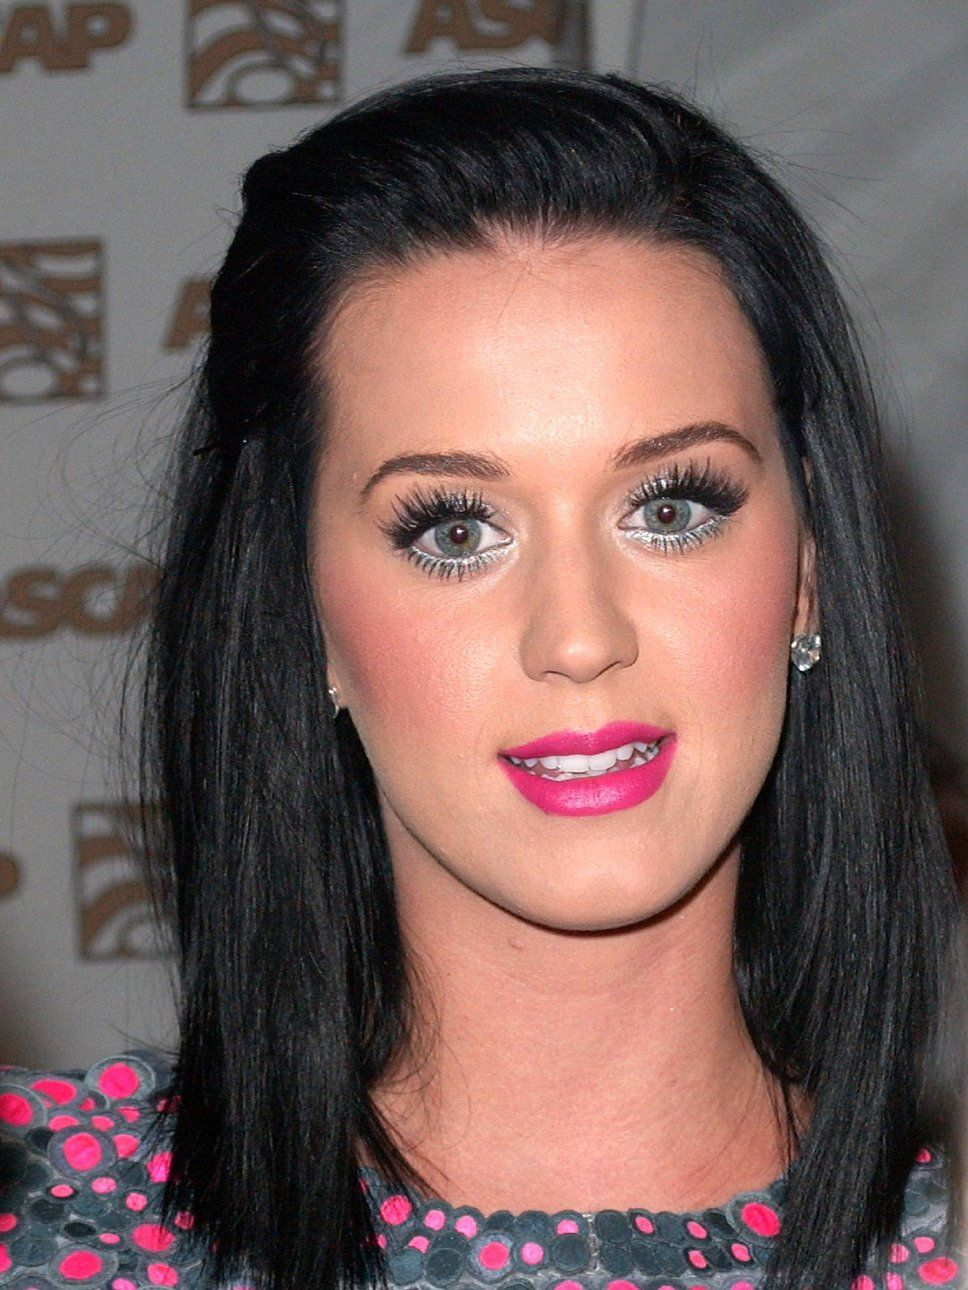 Katy perryi love her makeup katy perry pinterest katy perry katy perry photos voltagebd Image collections